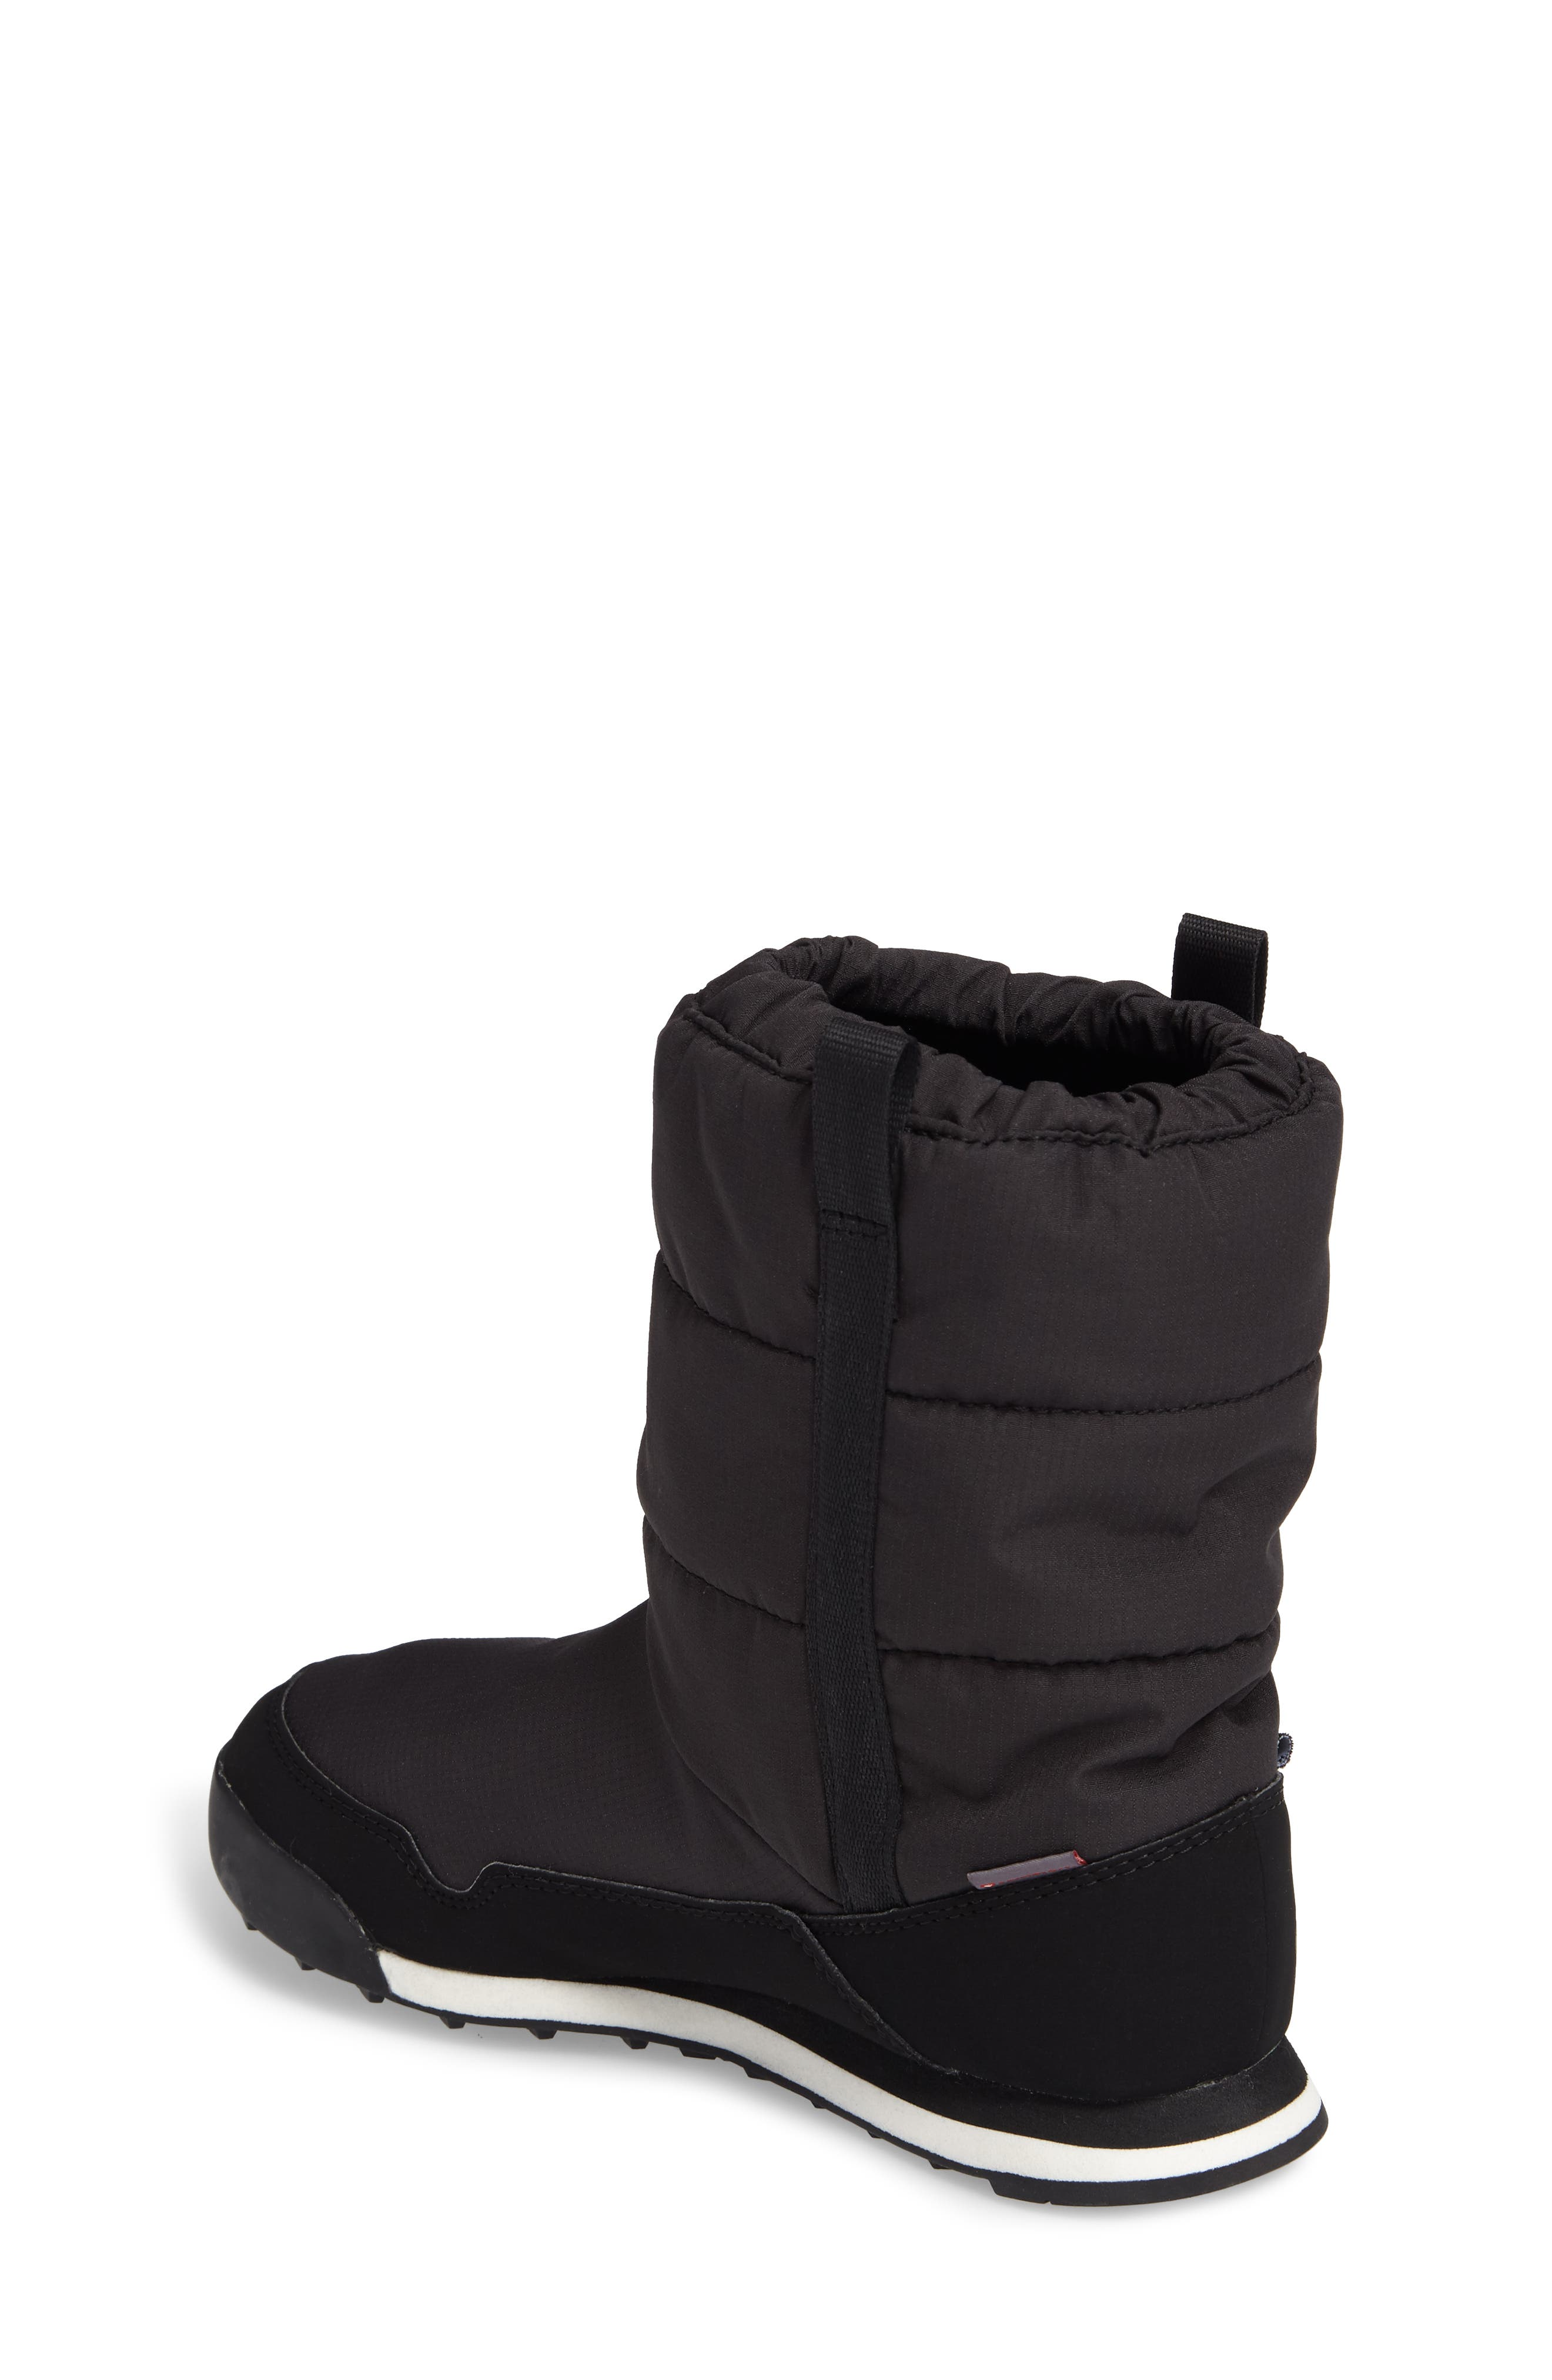 CW Snowpitch Insulated Waterproof Boot,                             Alternate thumbnail 2, color,                             001